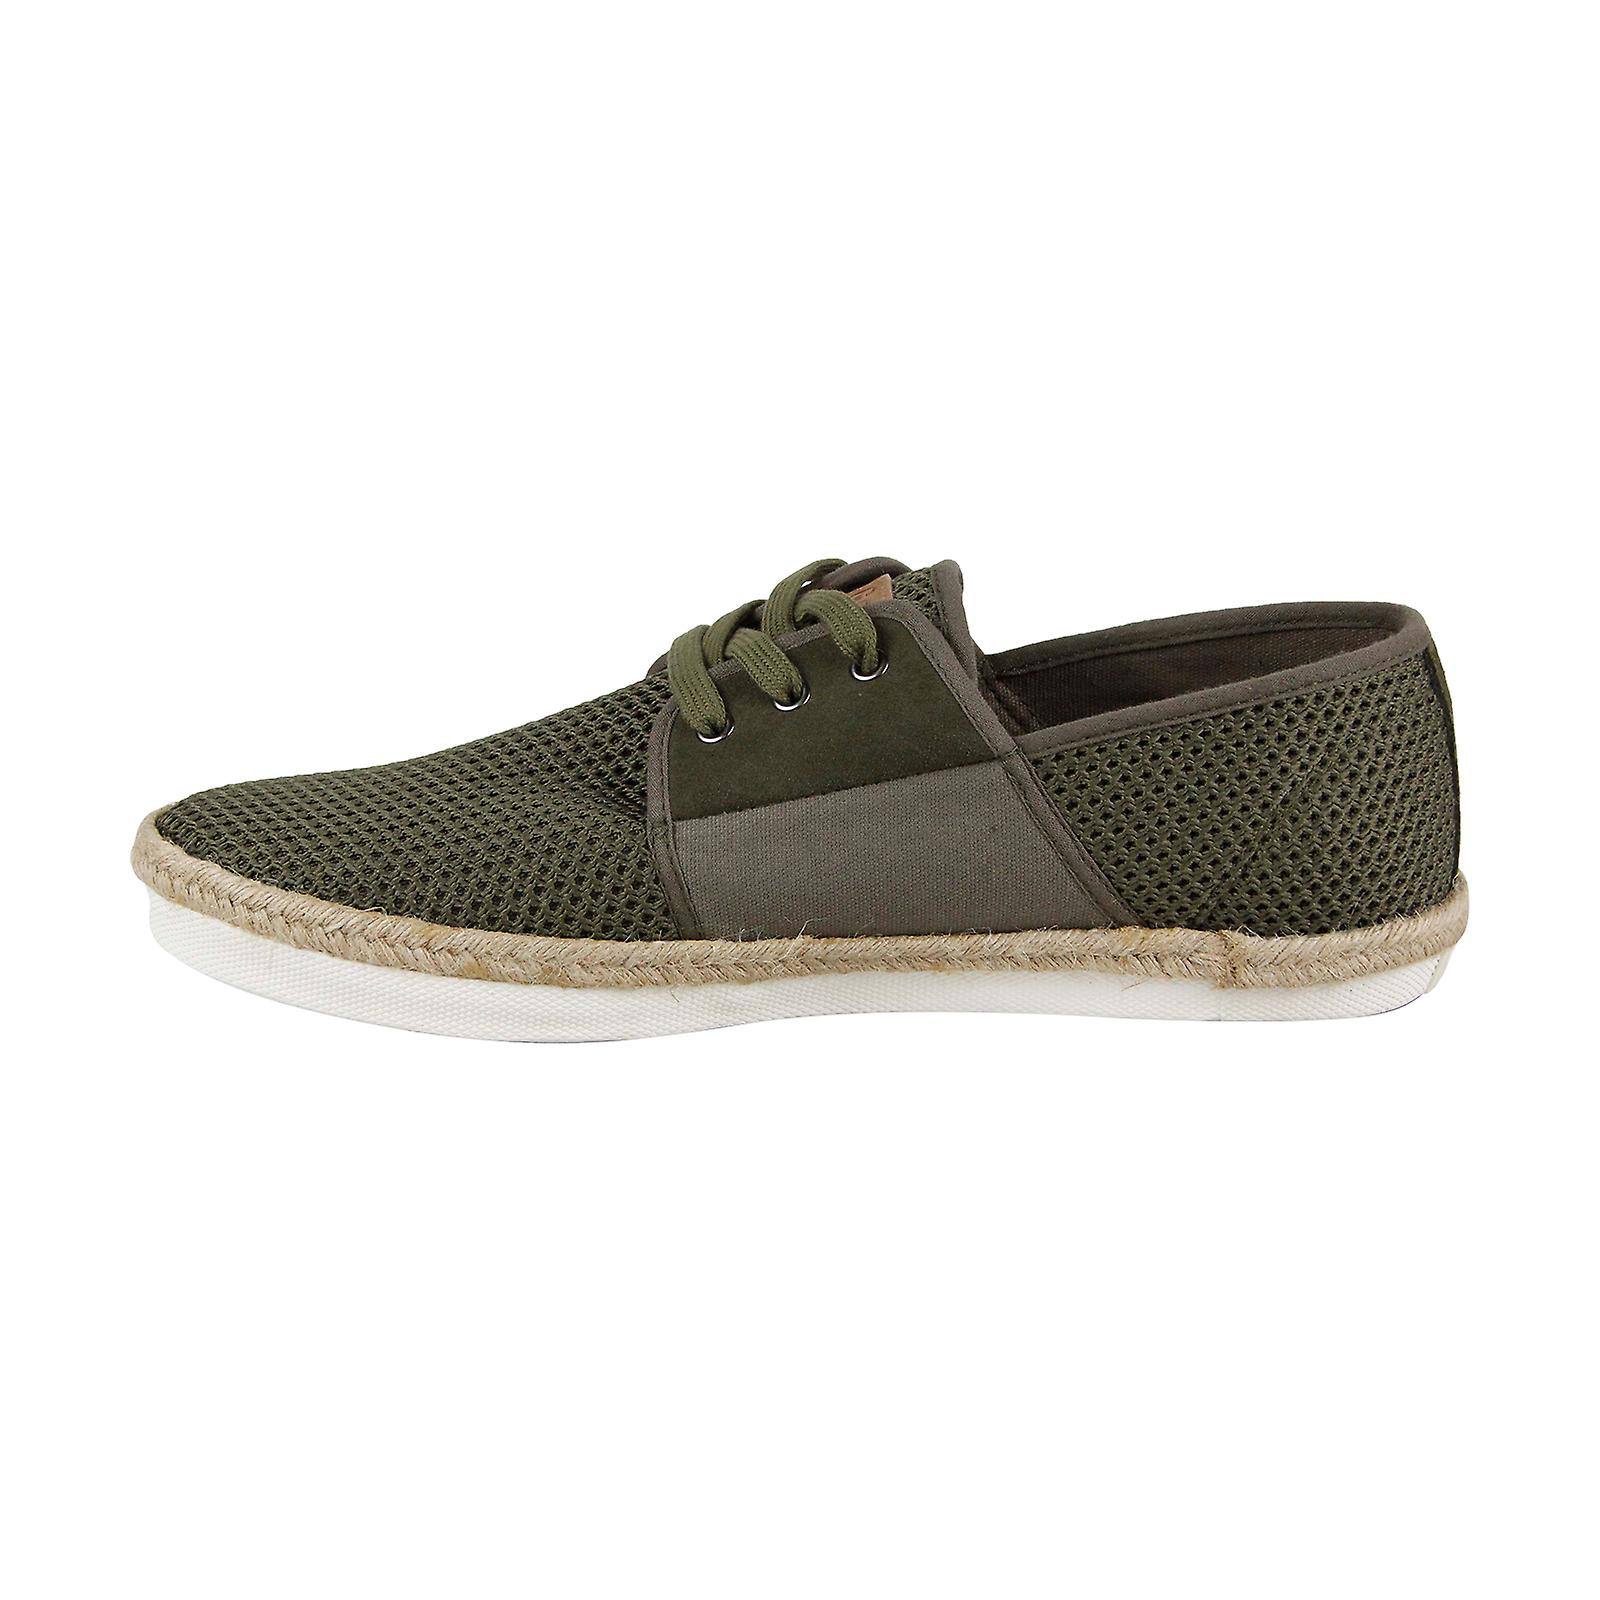 Chaussures Gola Slipway Mens Green Retro Lace Up Low Top Sneakers